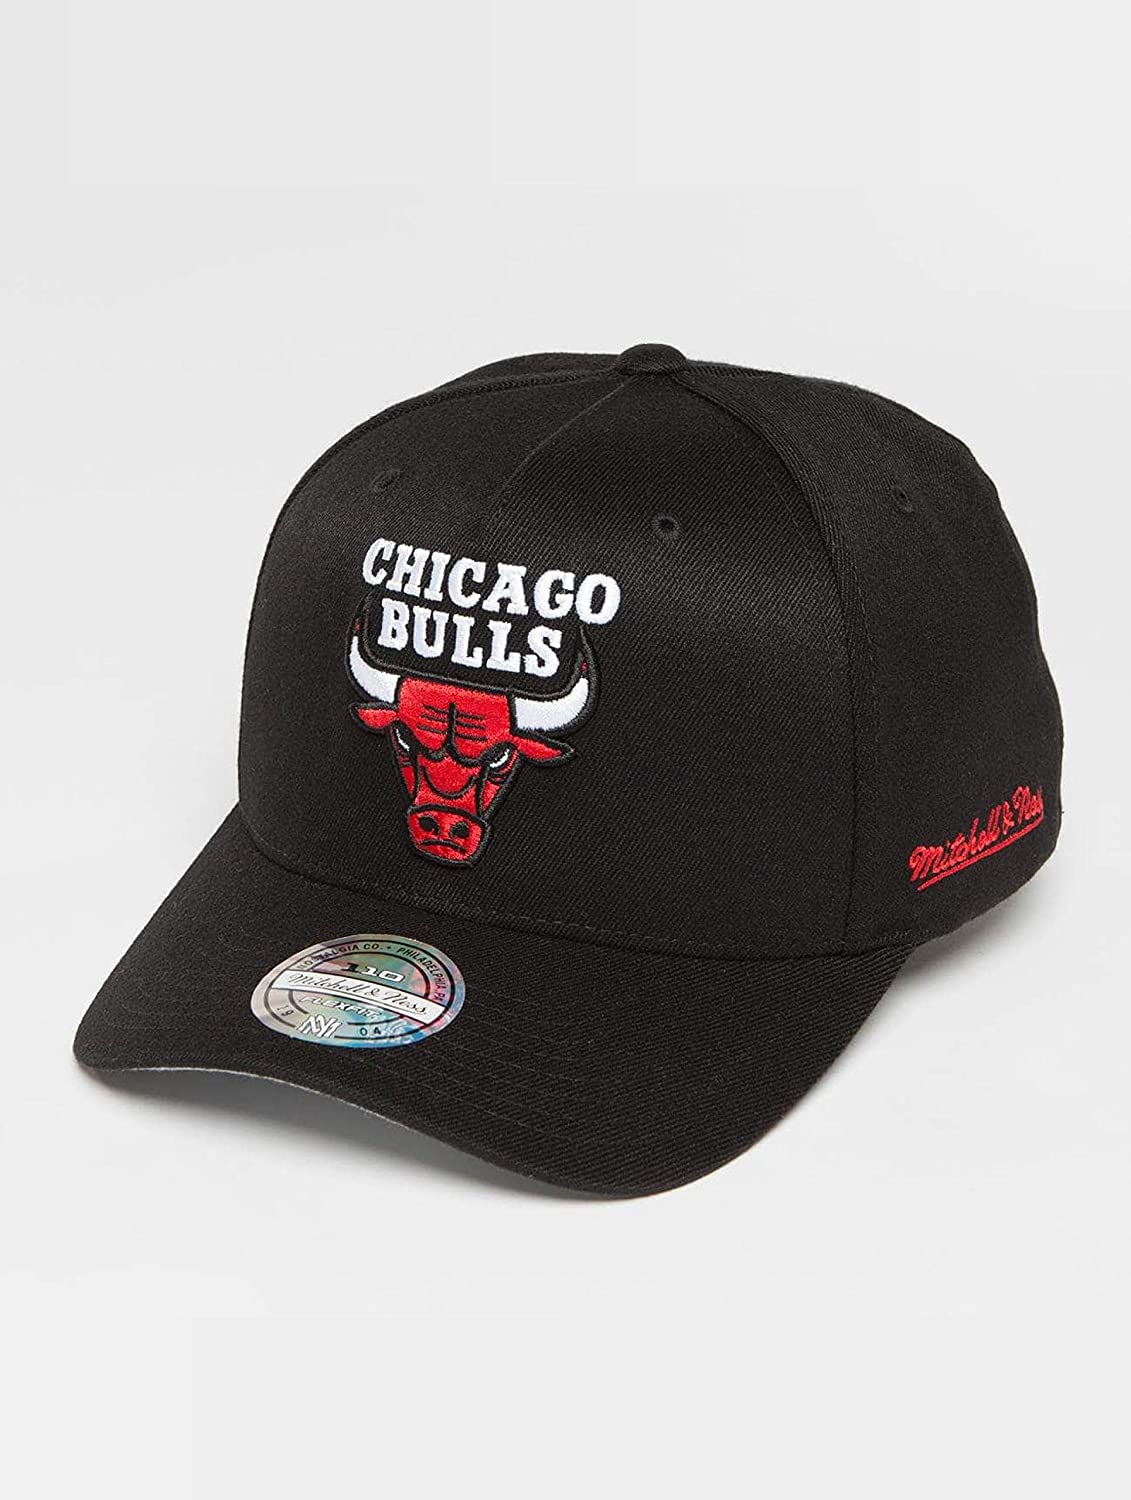 d5249b8eb12e3 Mitchell   Ness Chicago Bulls INTL132 110 Curved Eazy NBA Flexfit Snapback  Cap One Size Black at Amazon Men s Clothing store